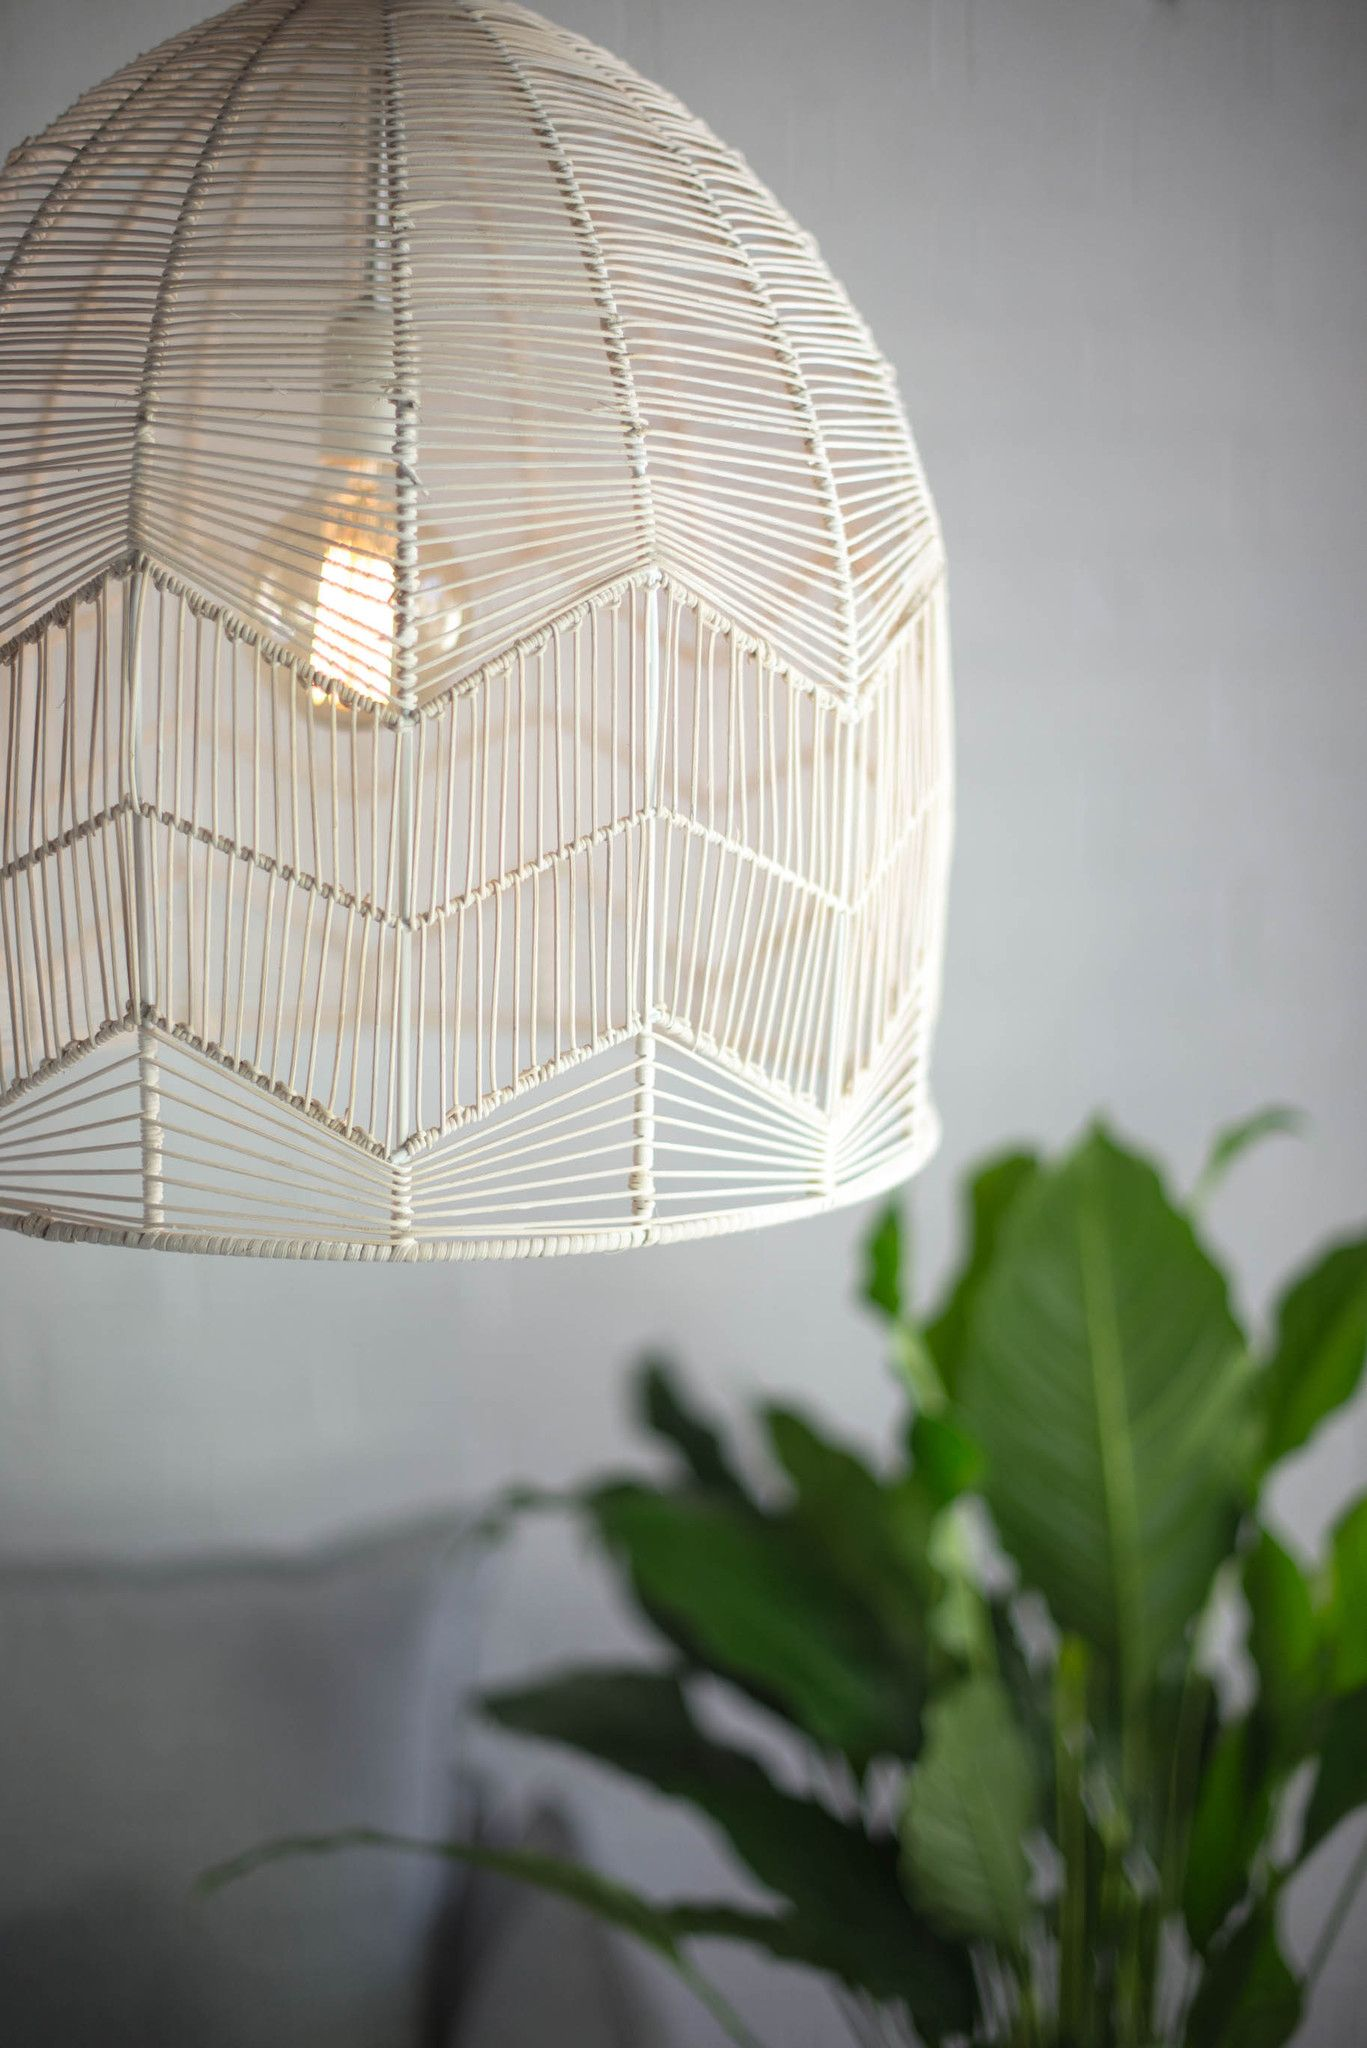 I am happy to say I have a new lighting obsession. The more and more I see cane, wicker, woven Abaca, and rattan basket lighting, the more I find myself trying to figure out how to incorporate these natural elements into my beach house. And I love that because they feel so lightweight and airy, you